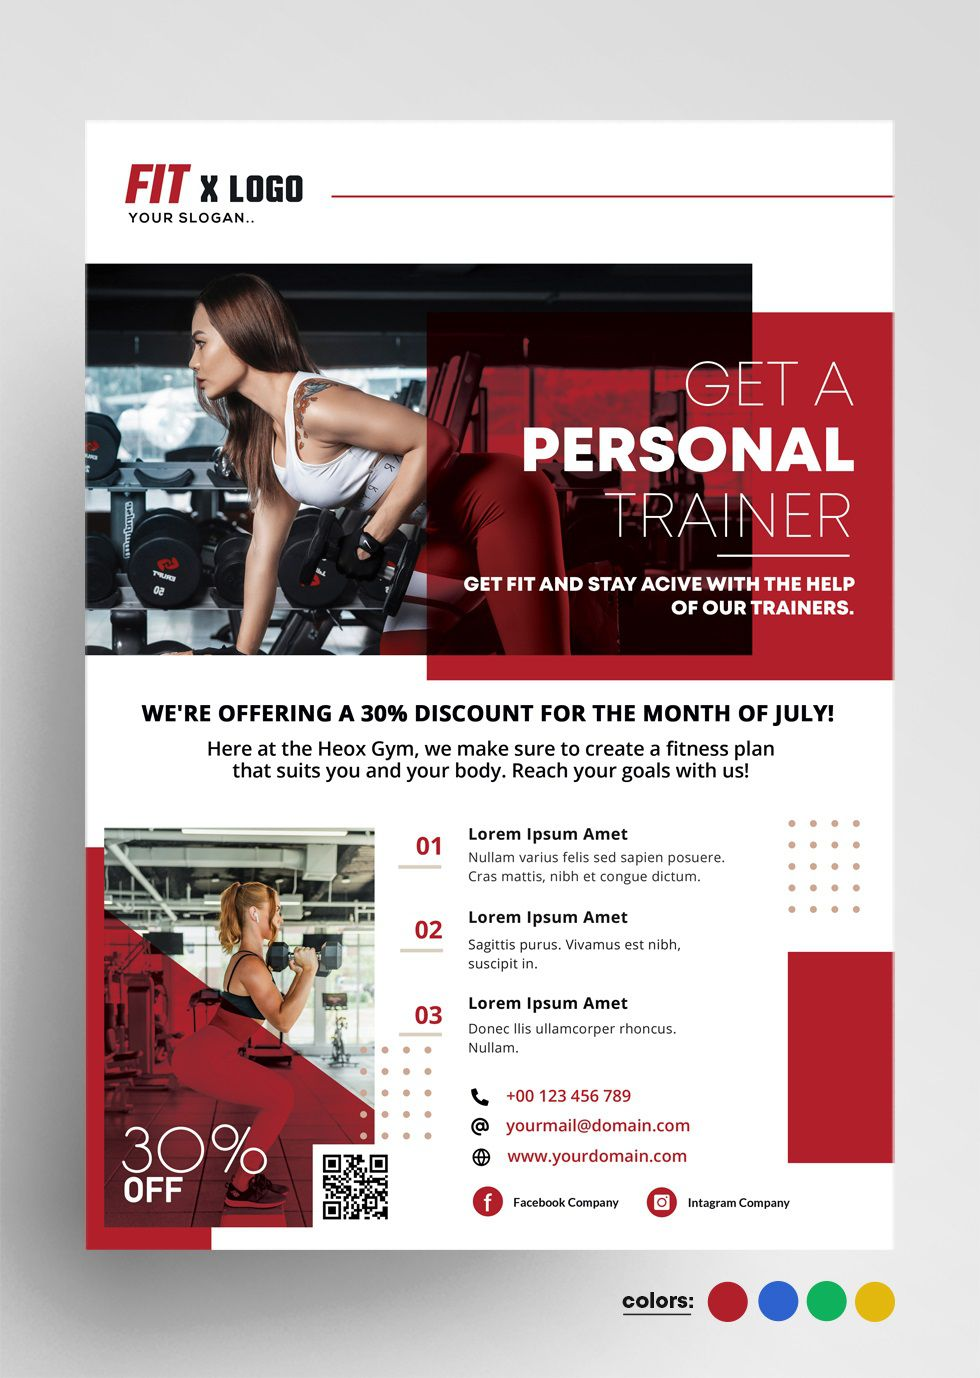 006 Sensational Personal Trainer Flyer Template Photo  Word PsdFull